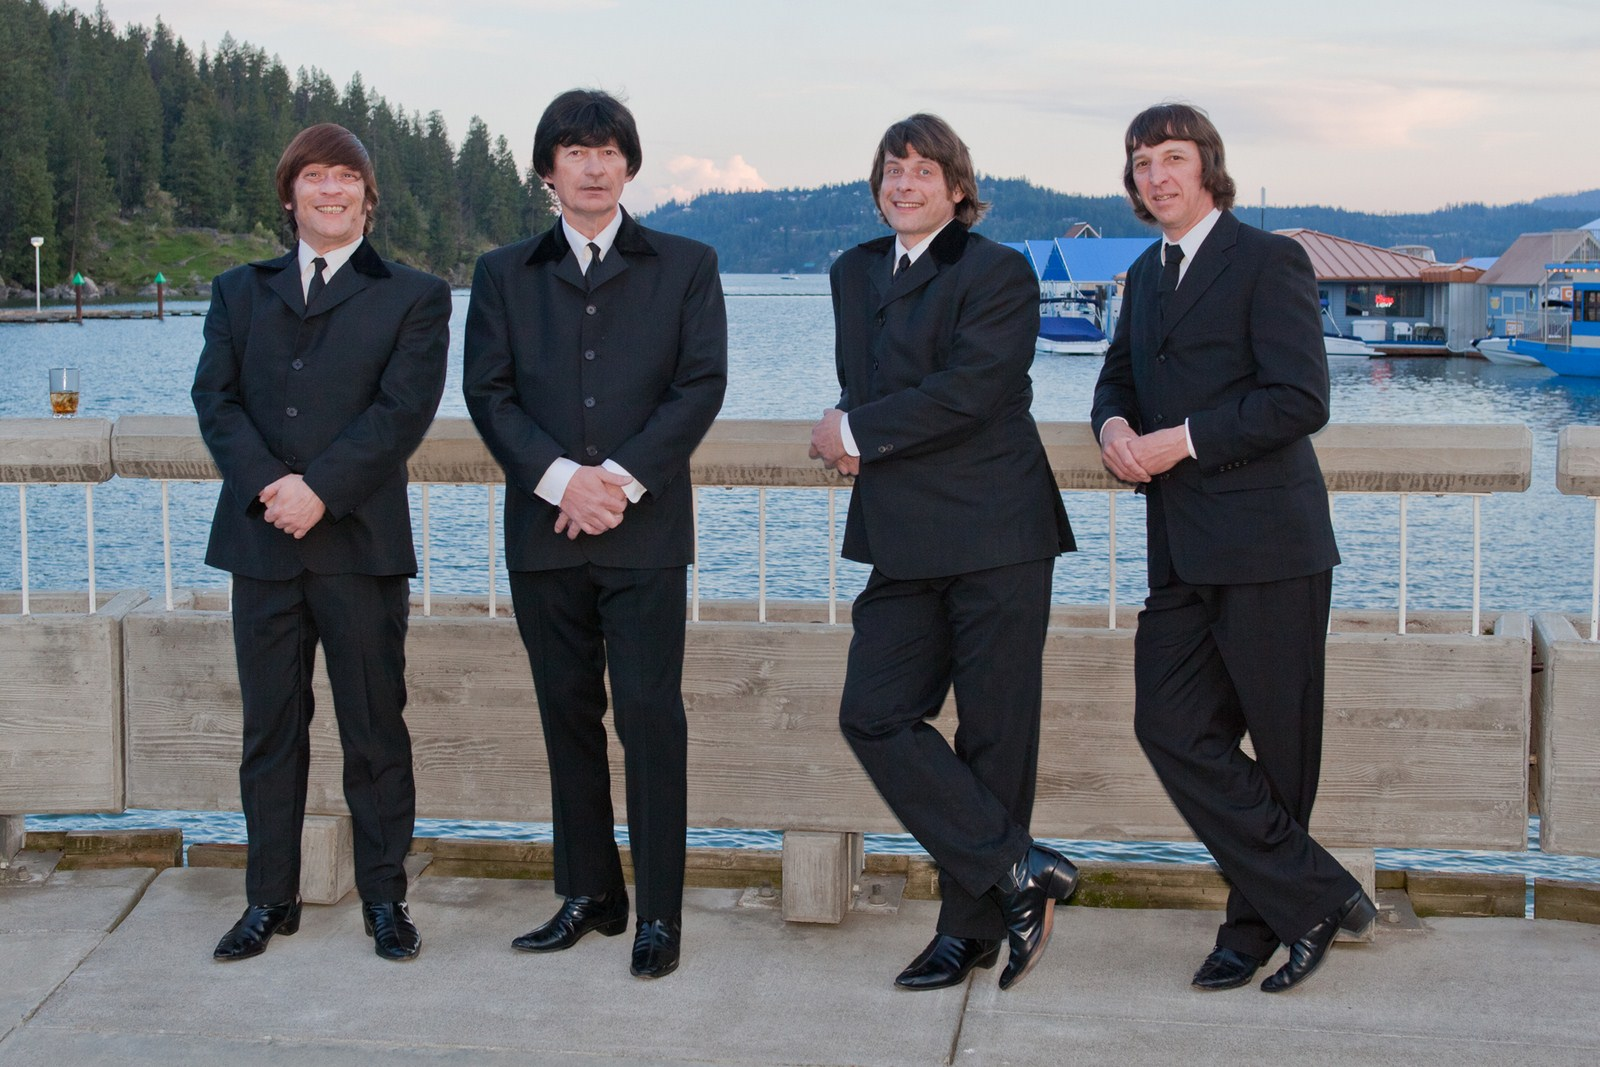 Spokane Beatles Tribute Band 1